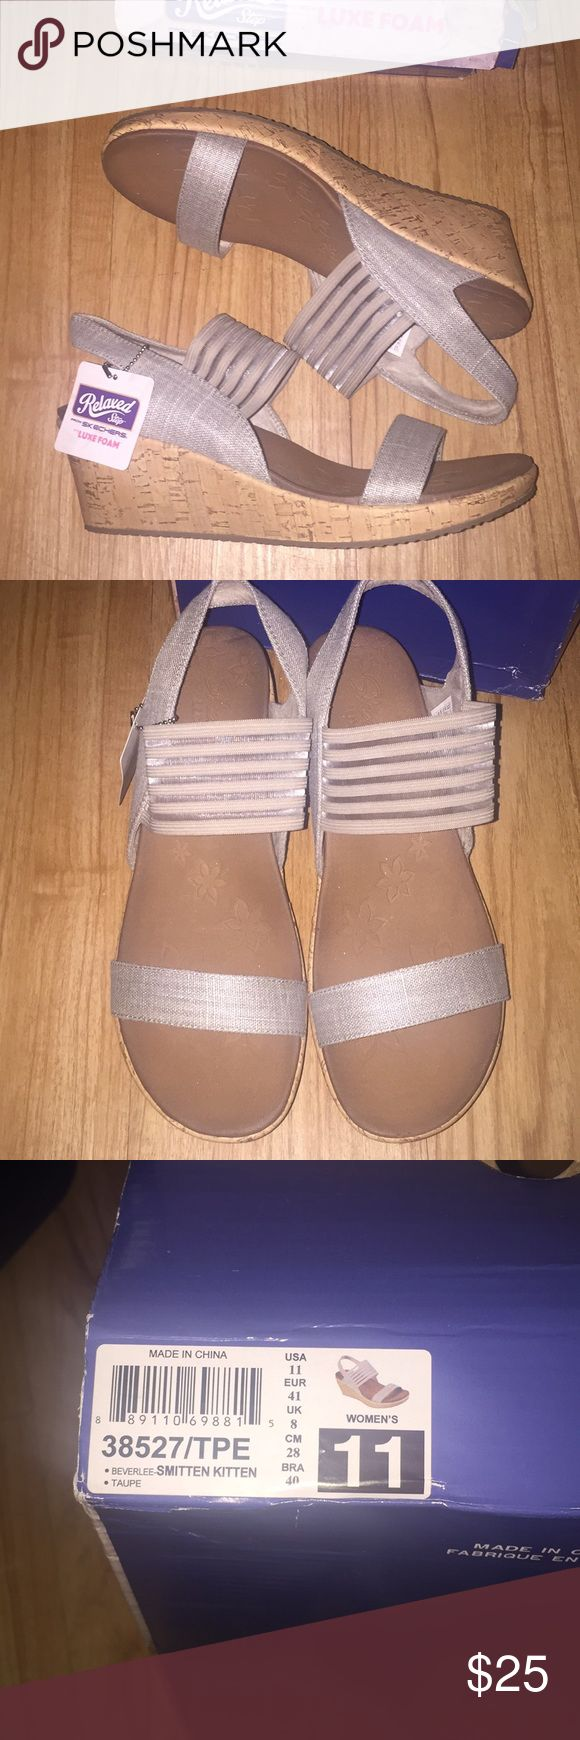 """Skechers Wedges NWT Skechers Wedge Shoes, """"Beverley-Smitten Kitten"""" in taupe, very comfortable (just a little big on me). Skechers Shoes Wedges"""